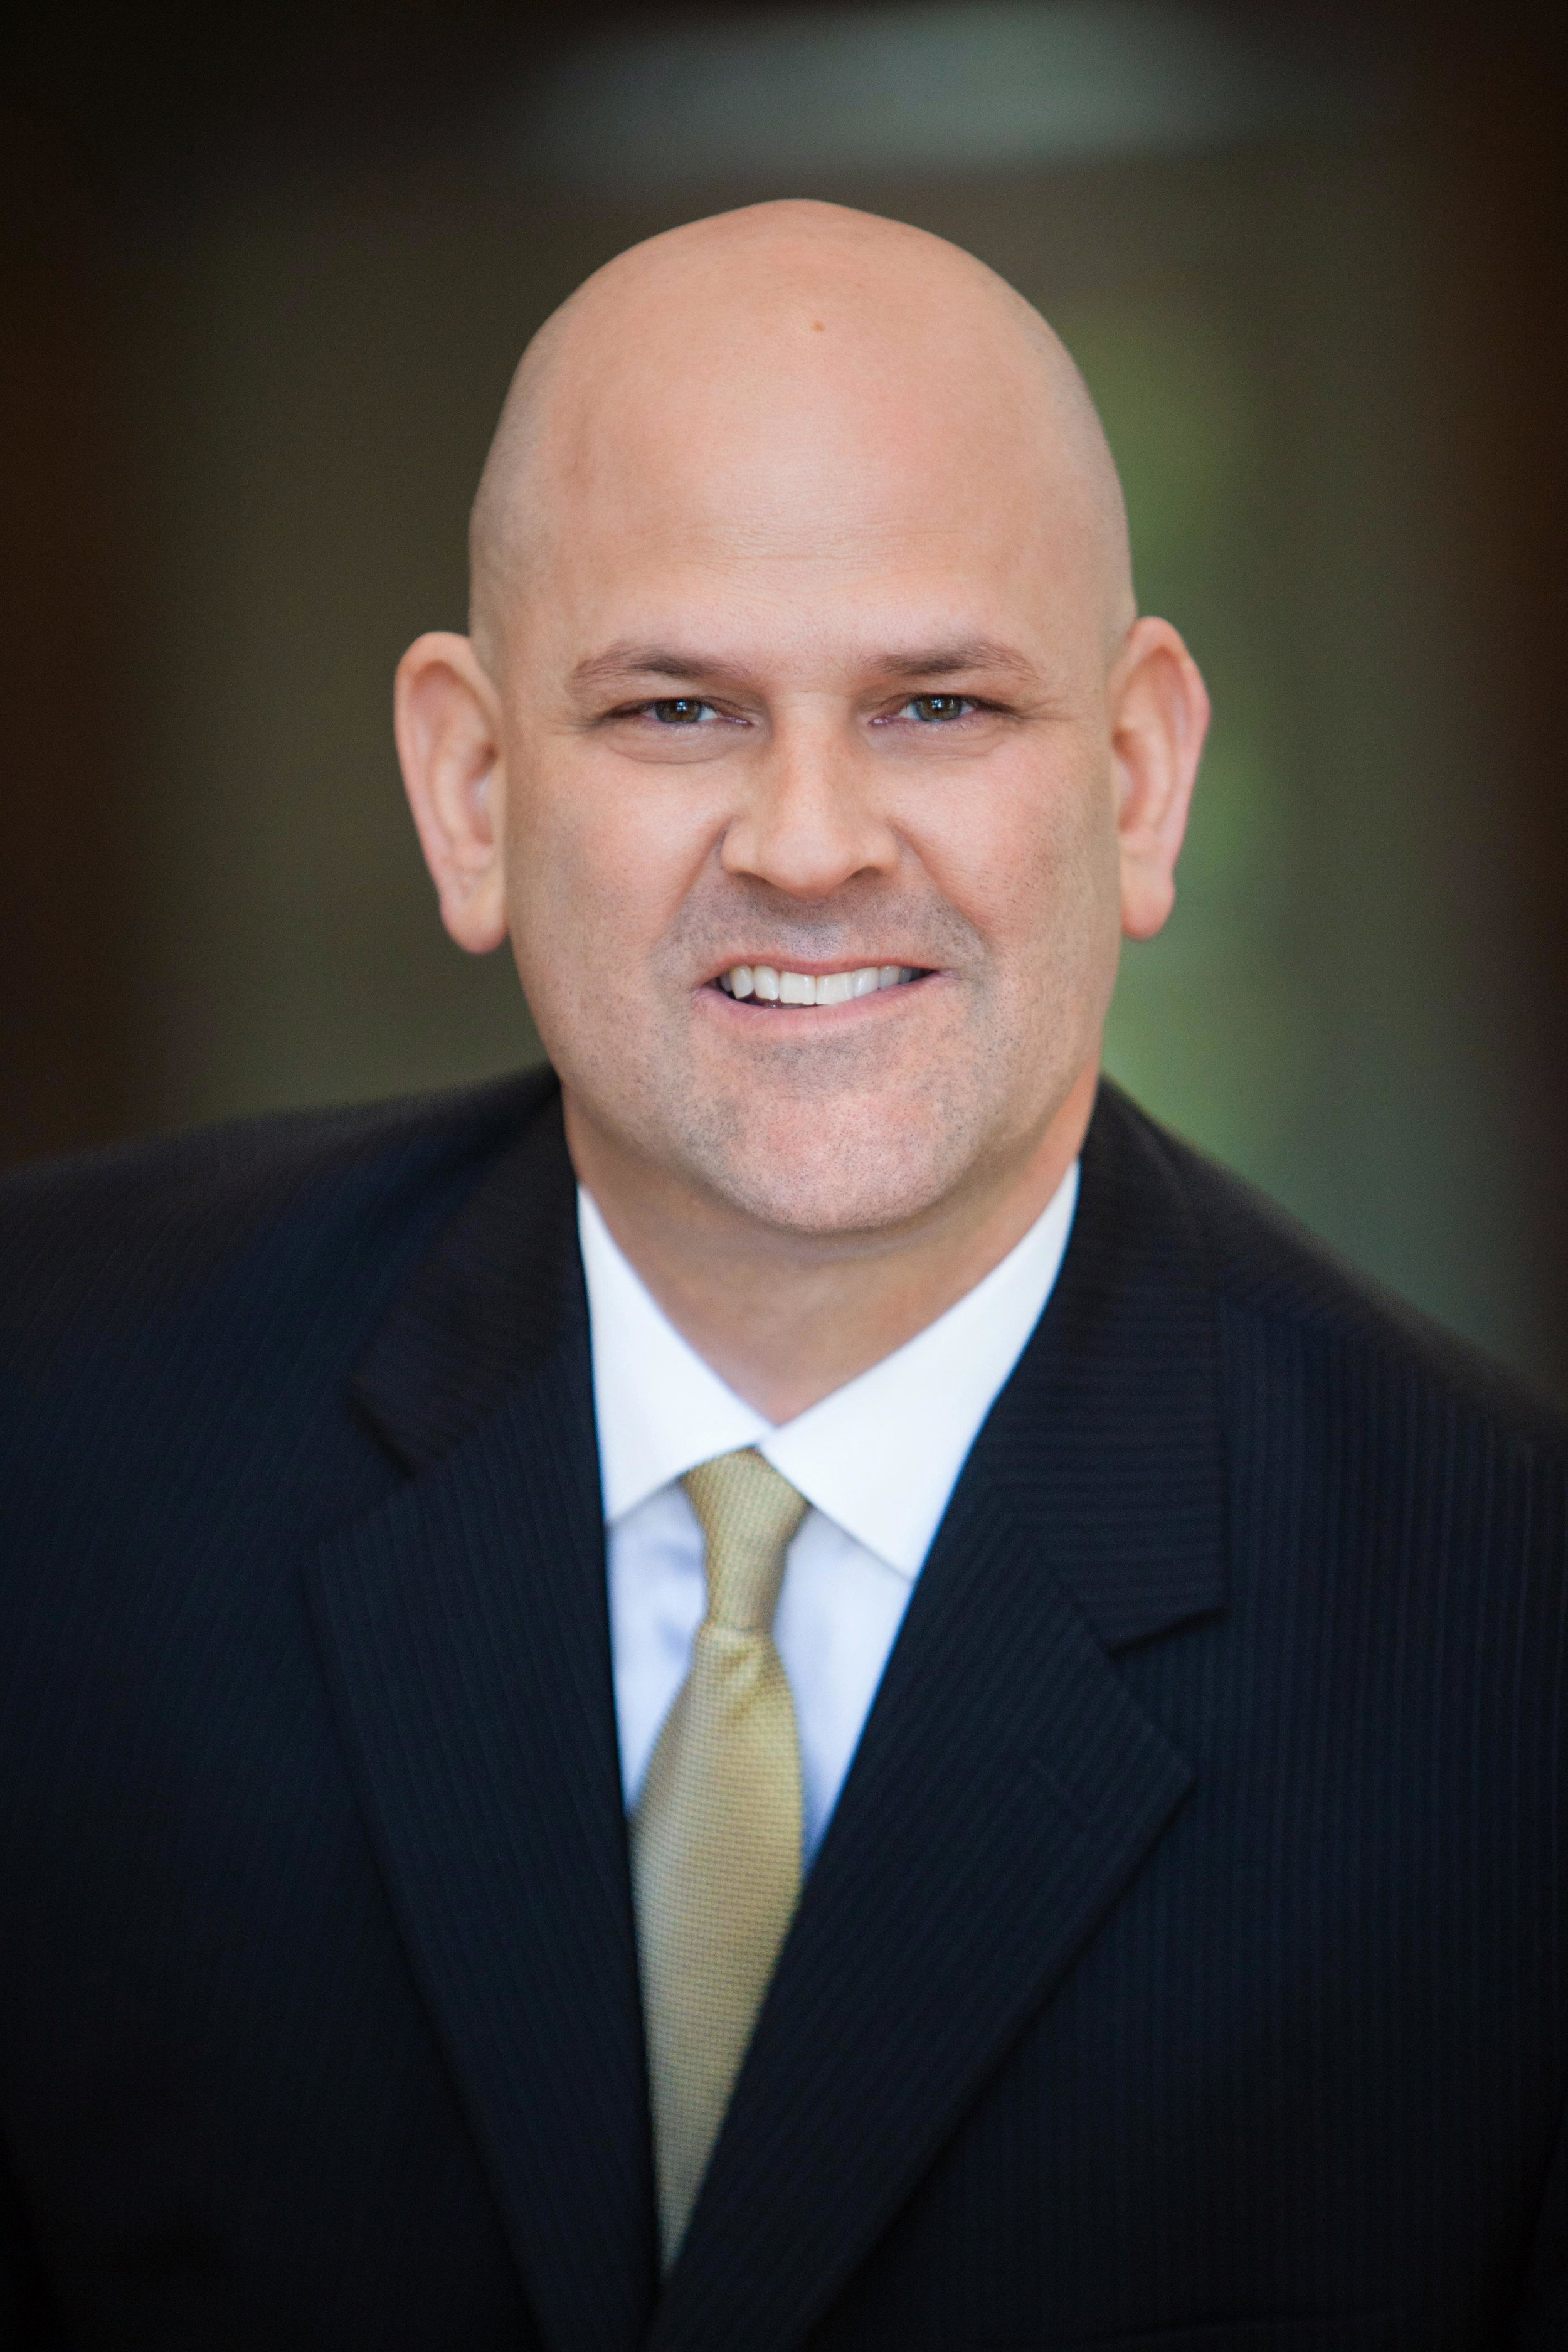 Merrill Lynch financial advisors and directors professional corporate headshot and team photography for men